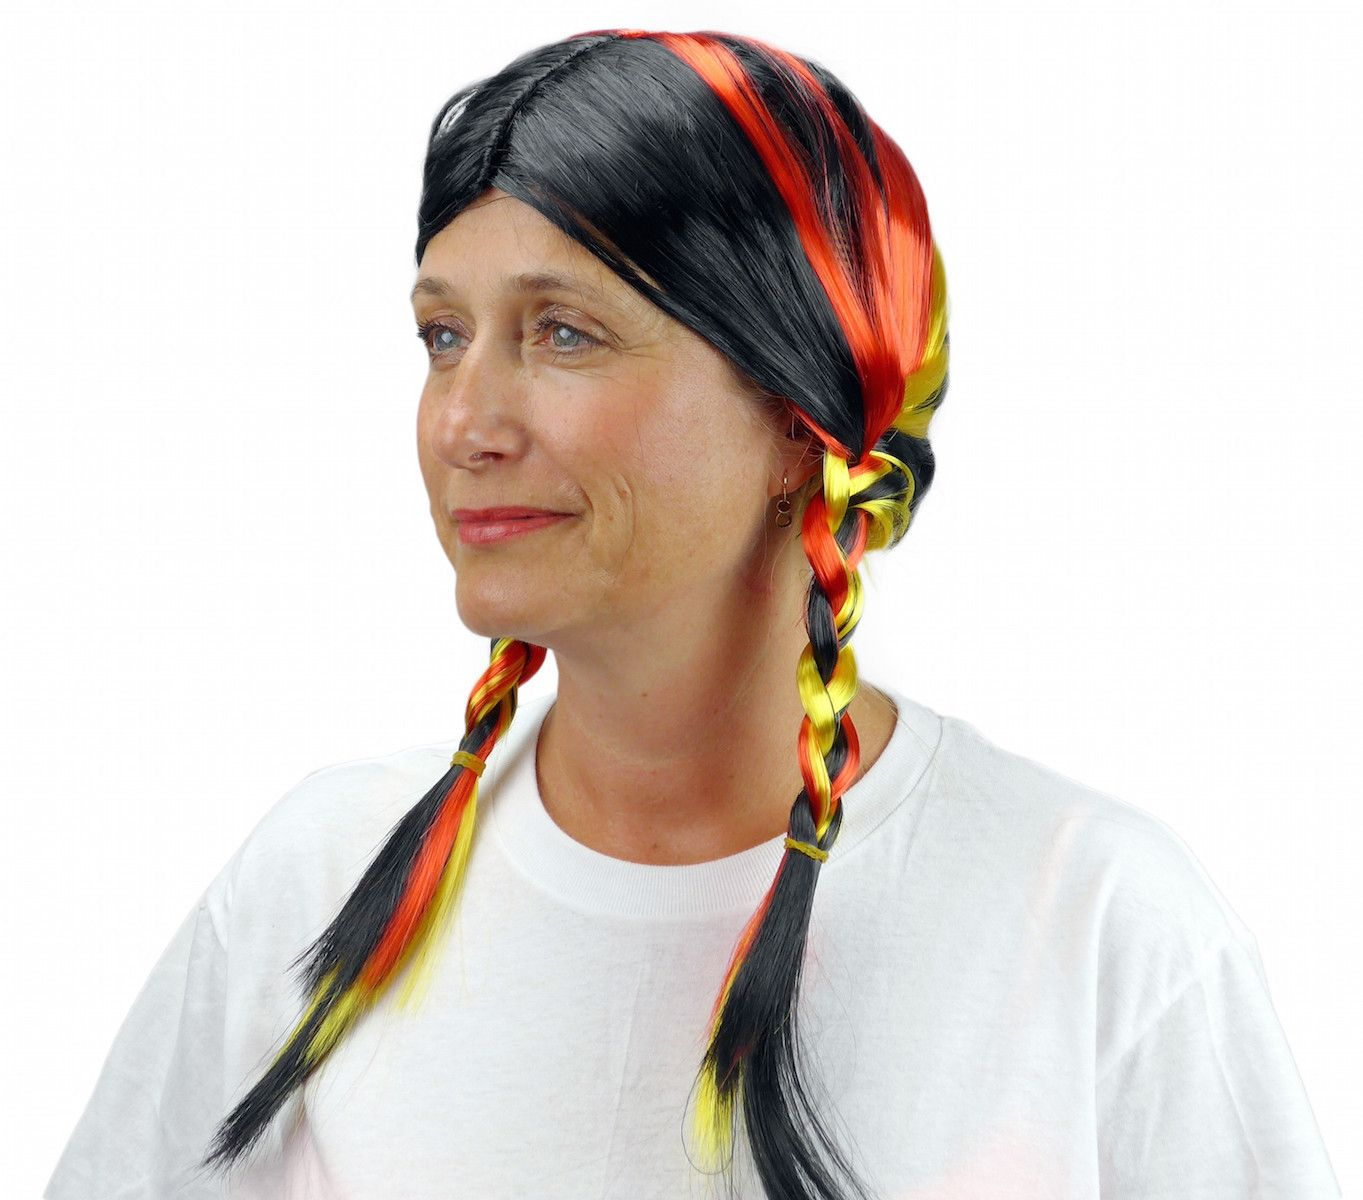 German Colors Wig (smaller size) 40% OFF! (5 LEFT)